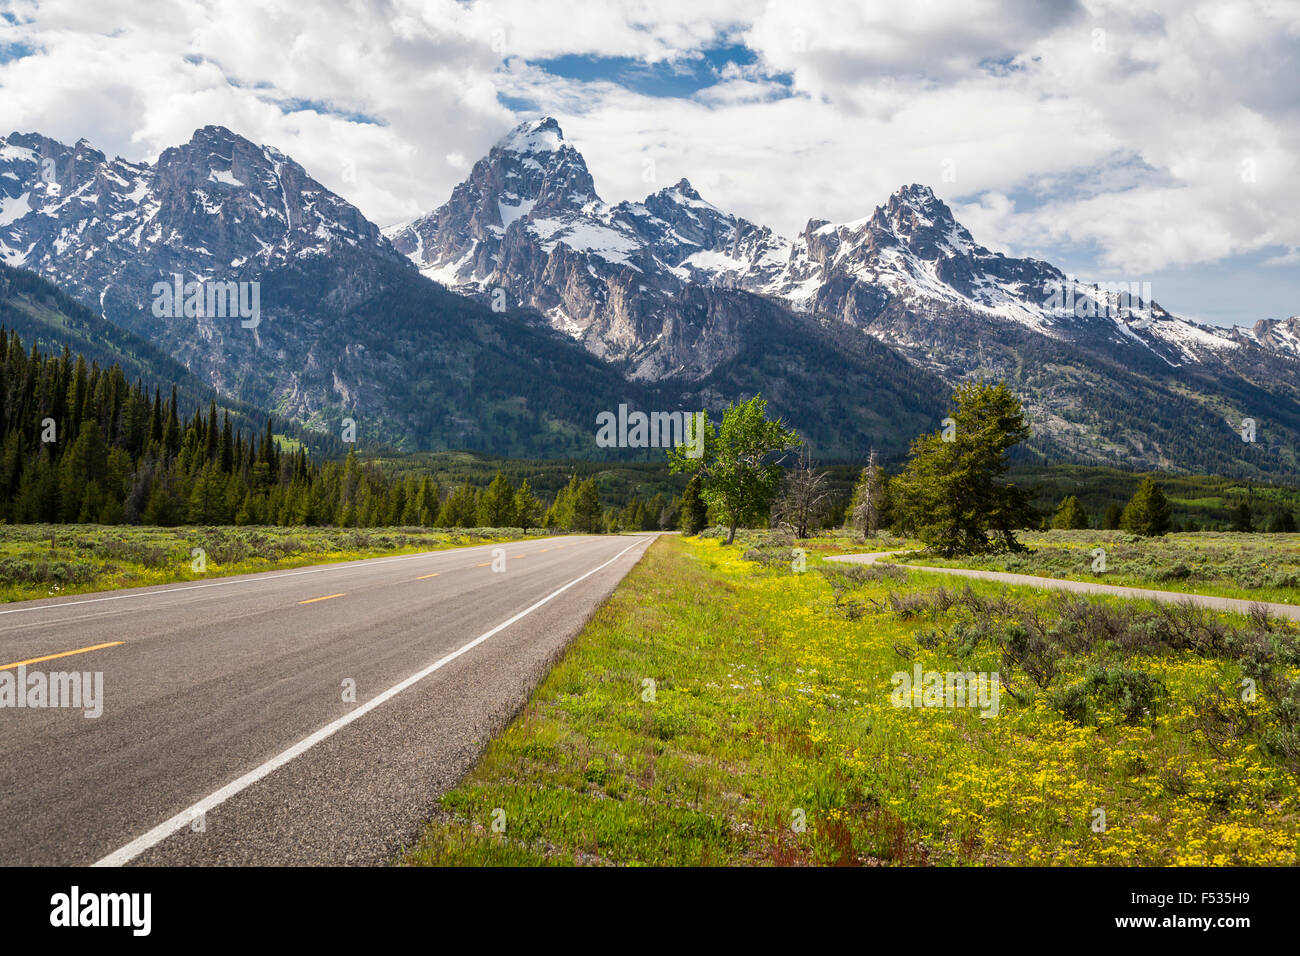 Mountains and a park roadway in the Grand Tetons National Park, Wyoming, USA. - Stock Image